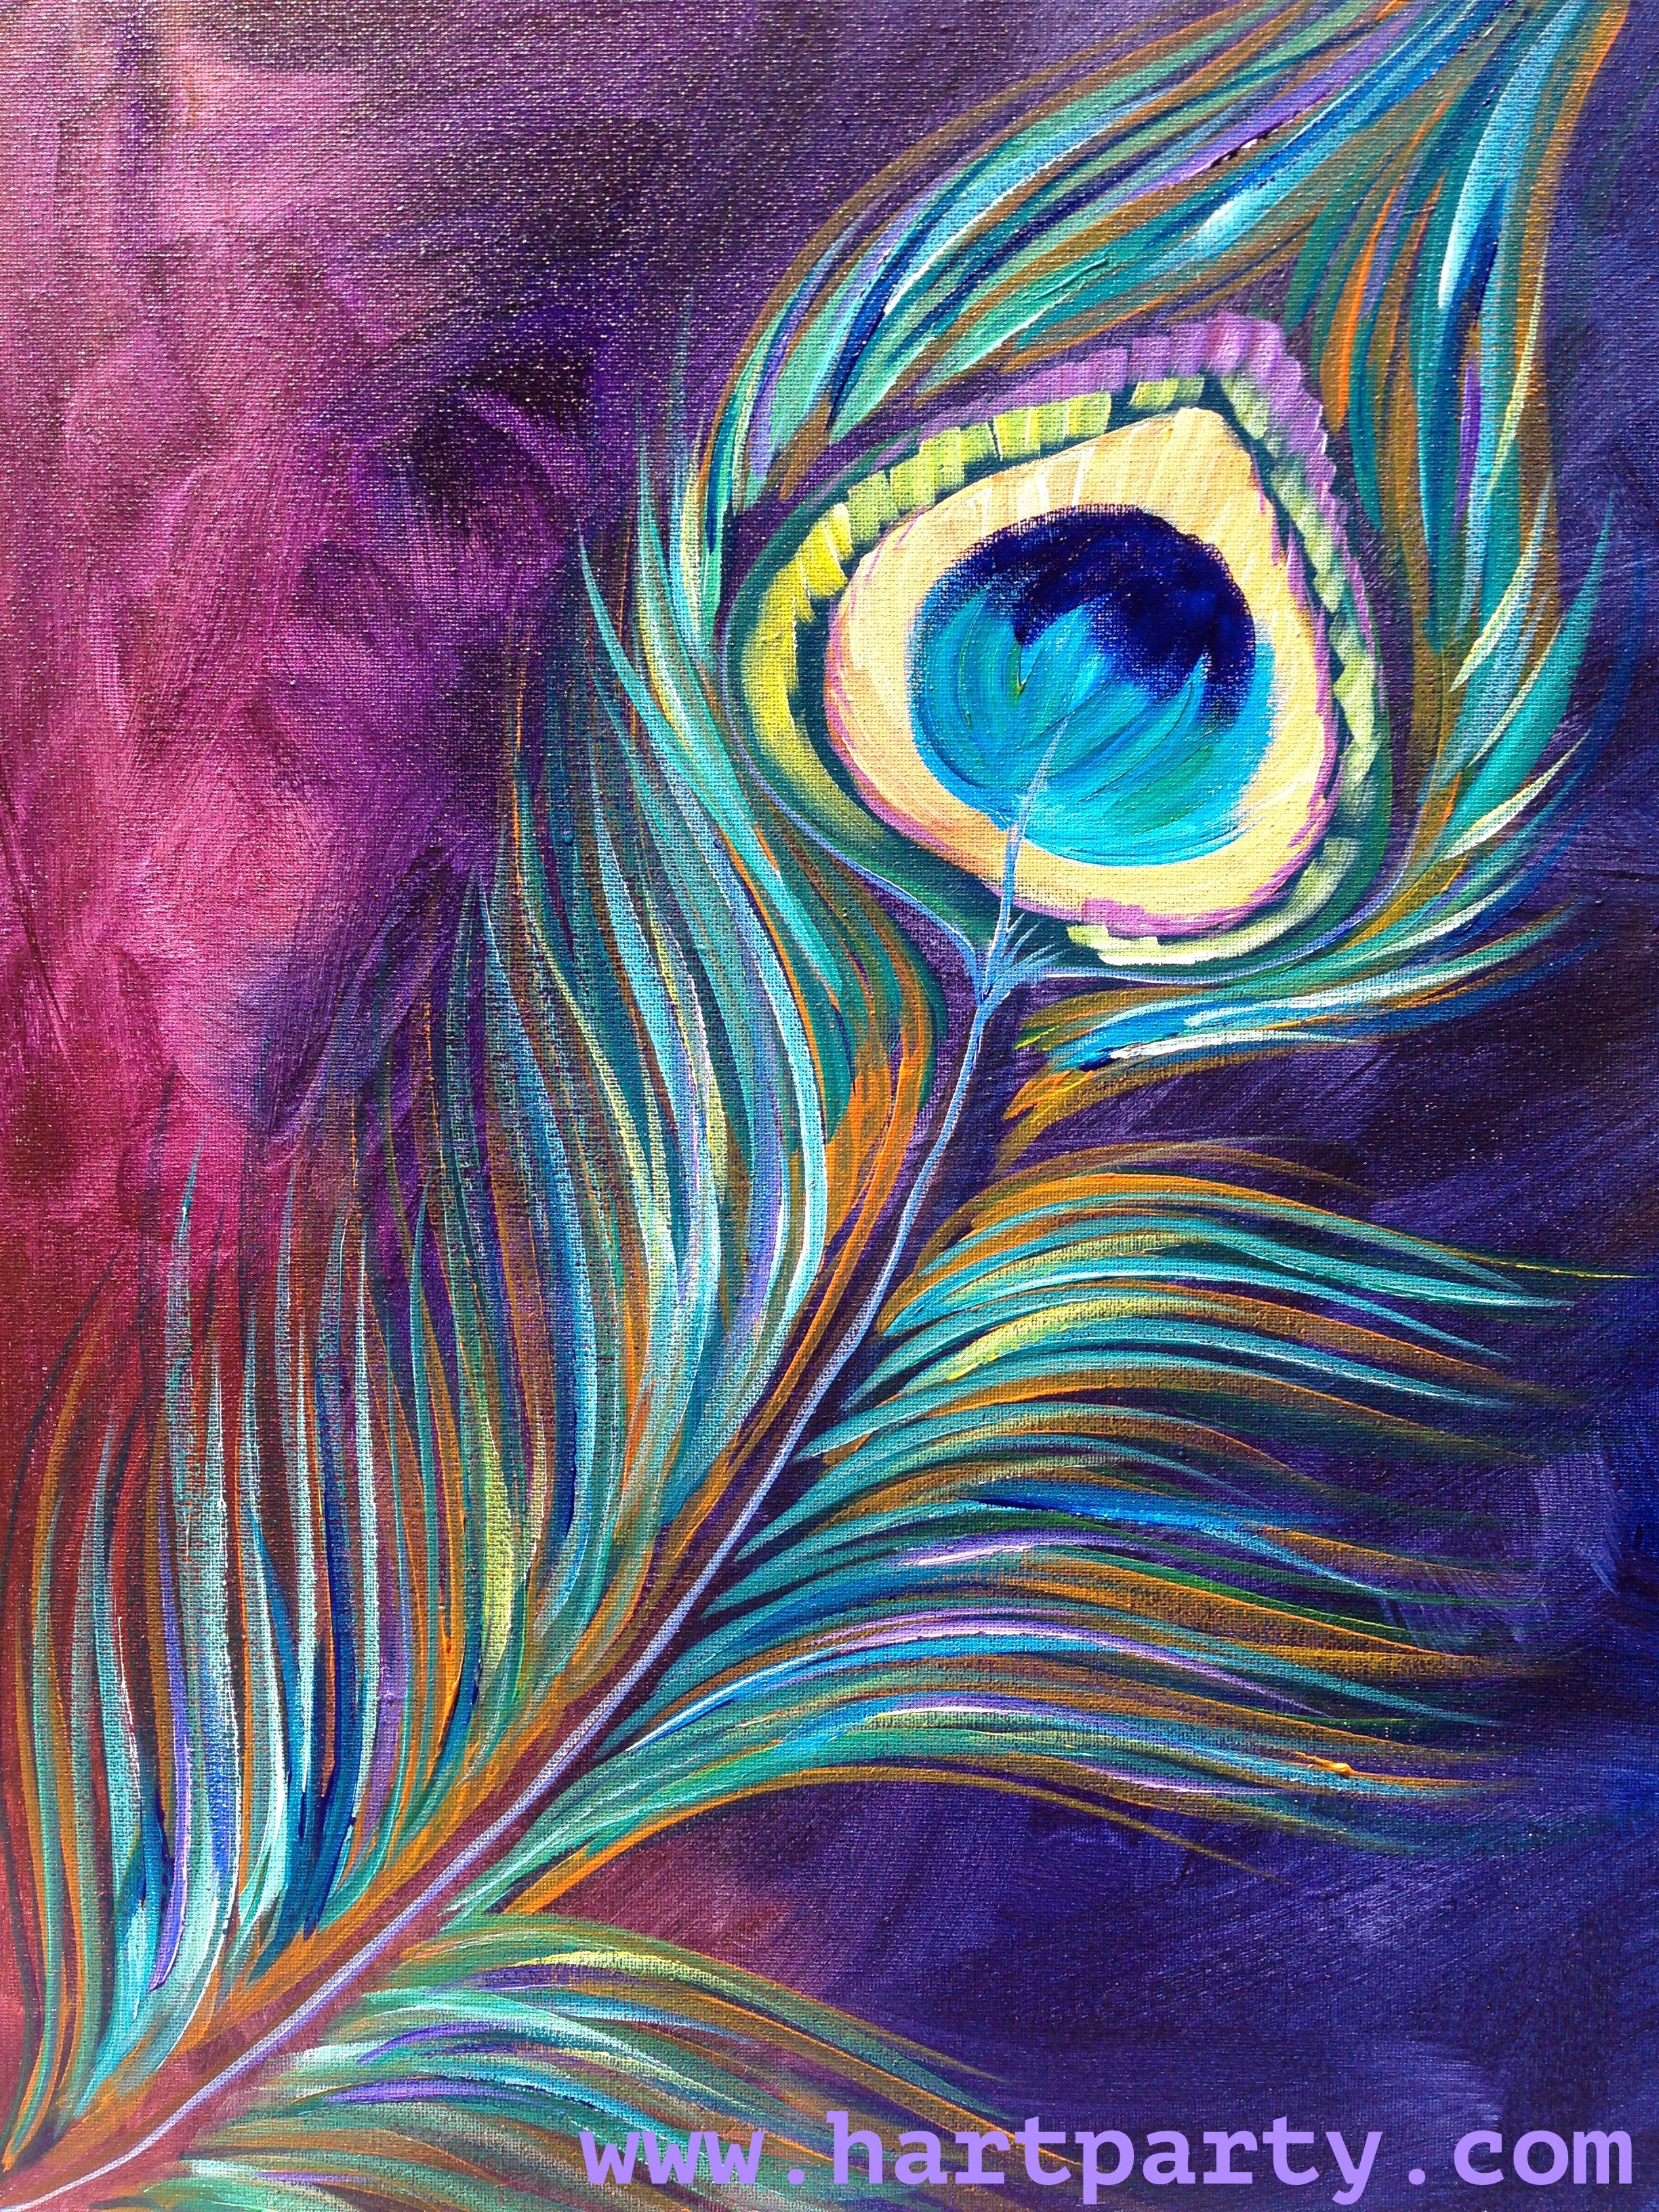 Peacock Feather #2 By Cinnamon Cooney The Art Sherpa